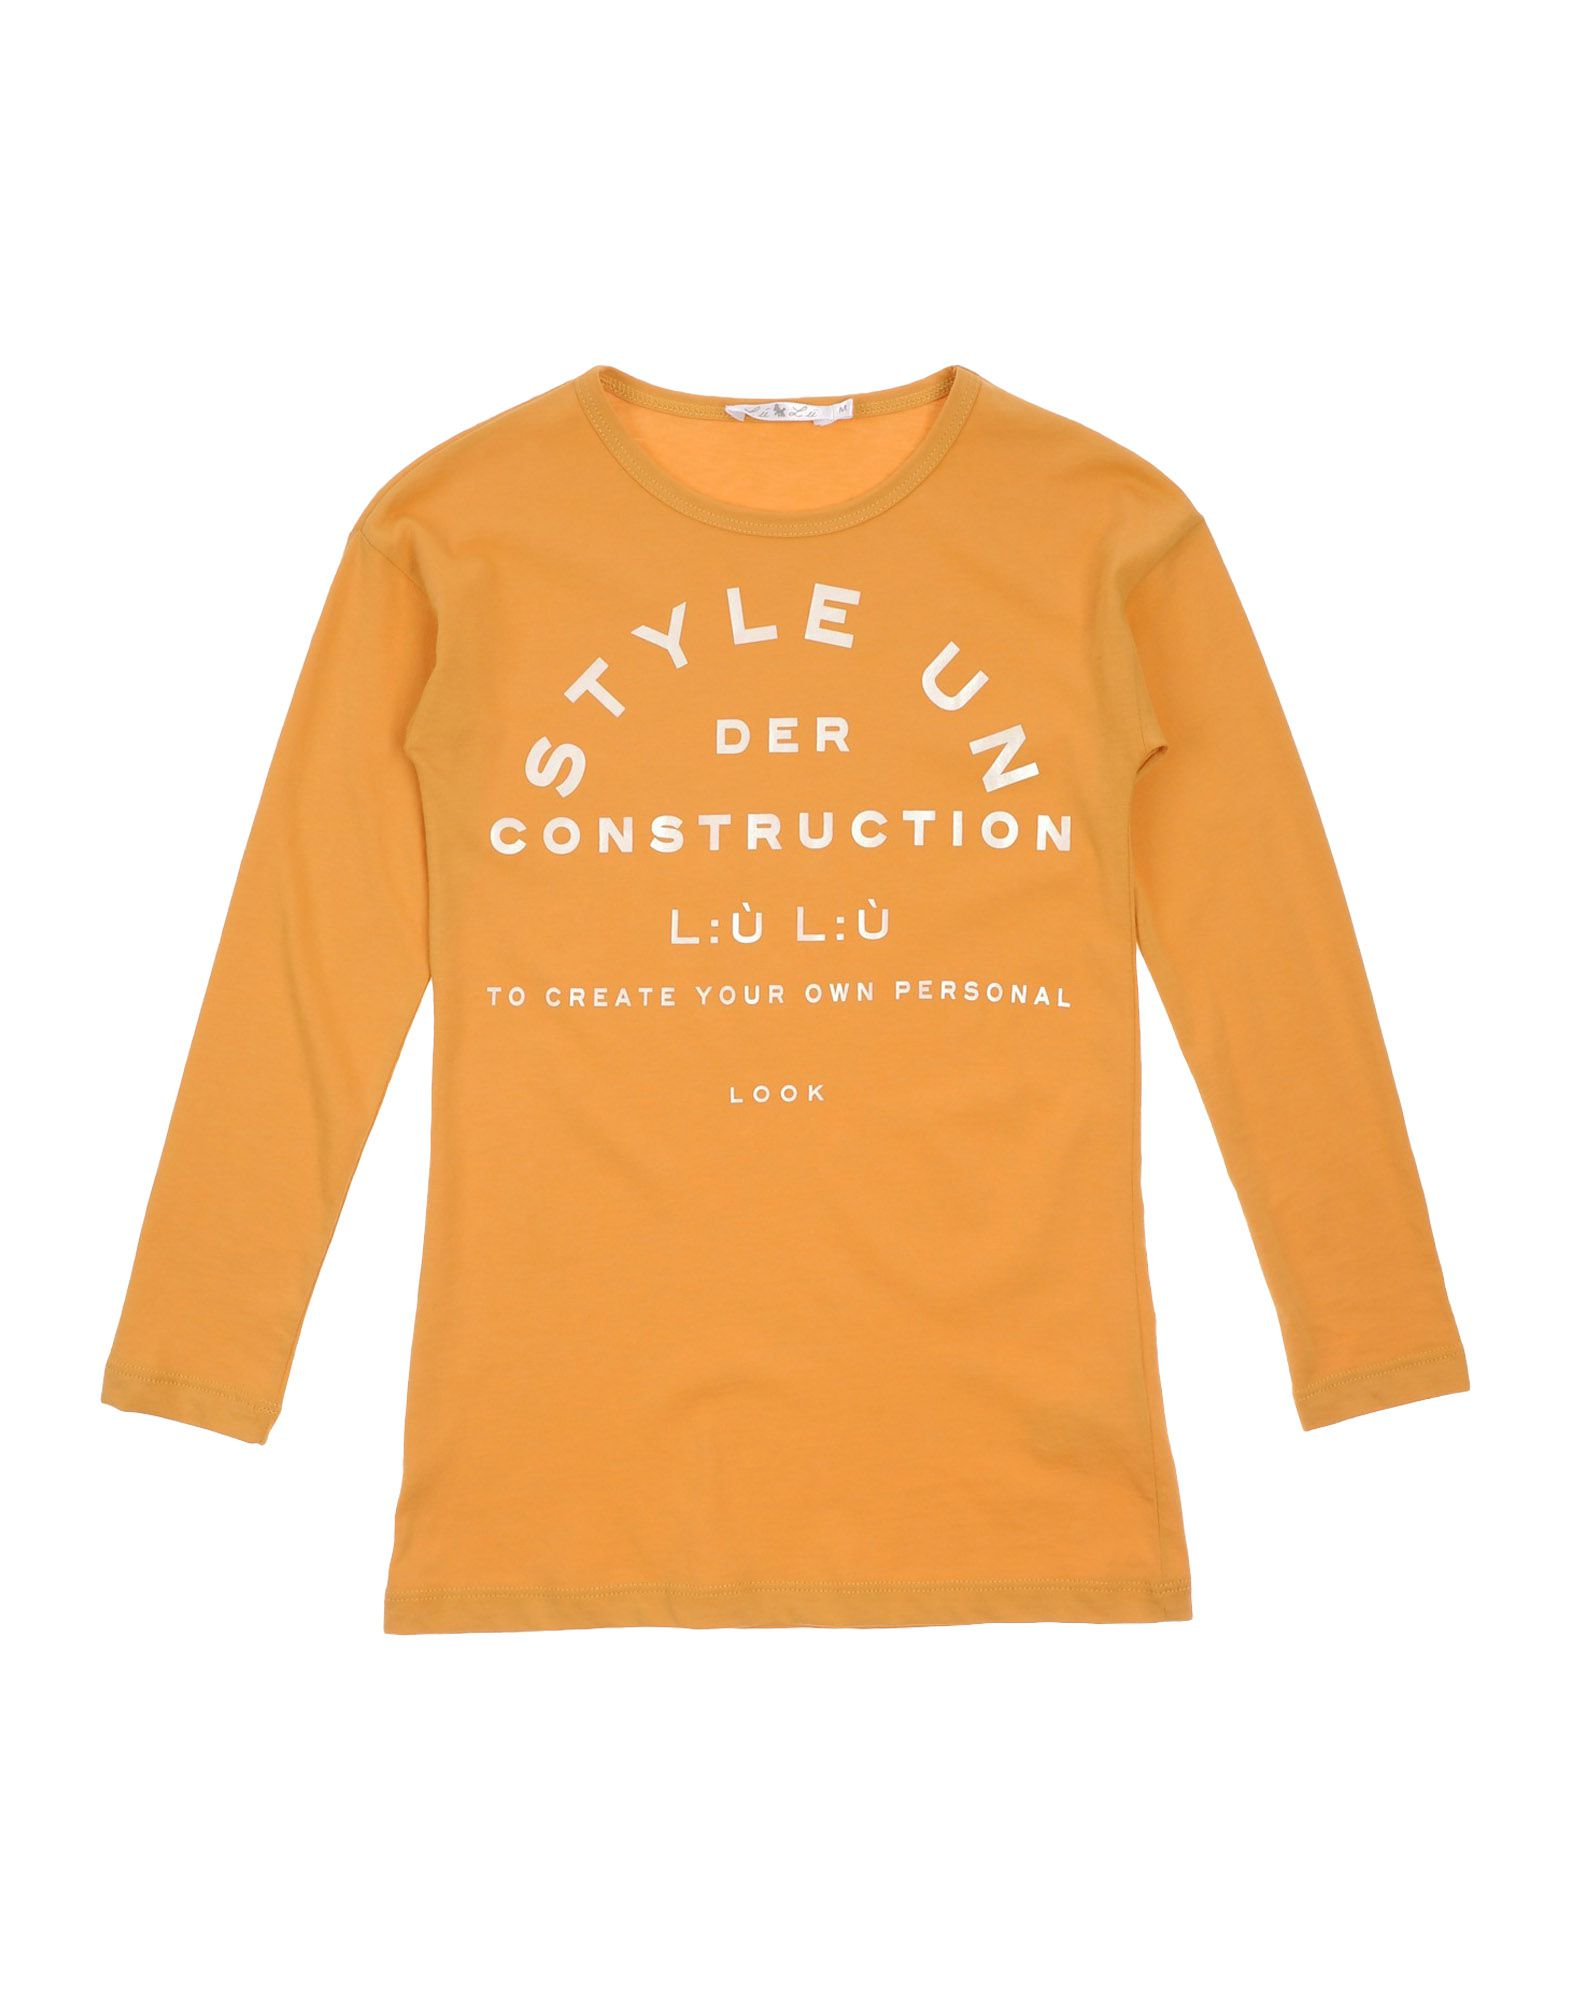 L:ú L:ú By Miss Grant Kids' T-shirts In Orange